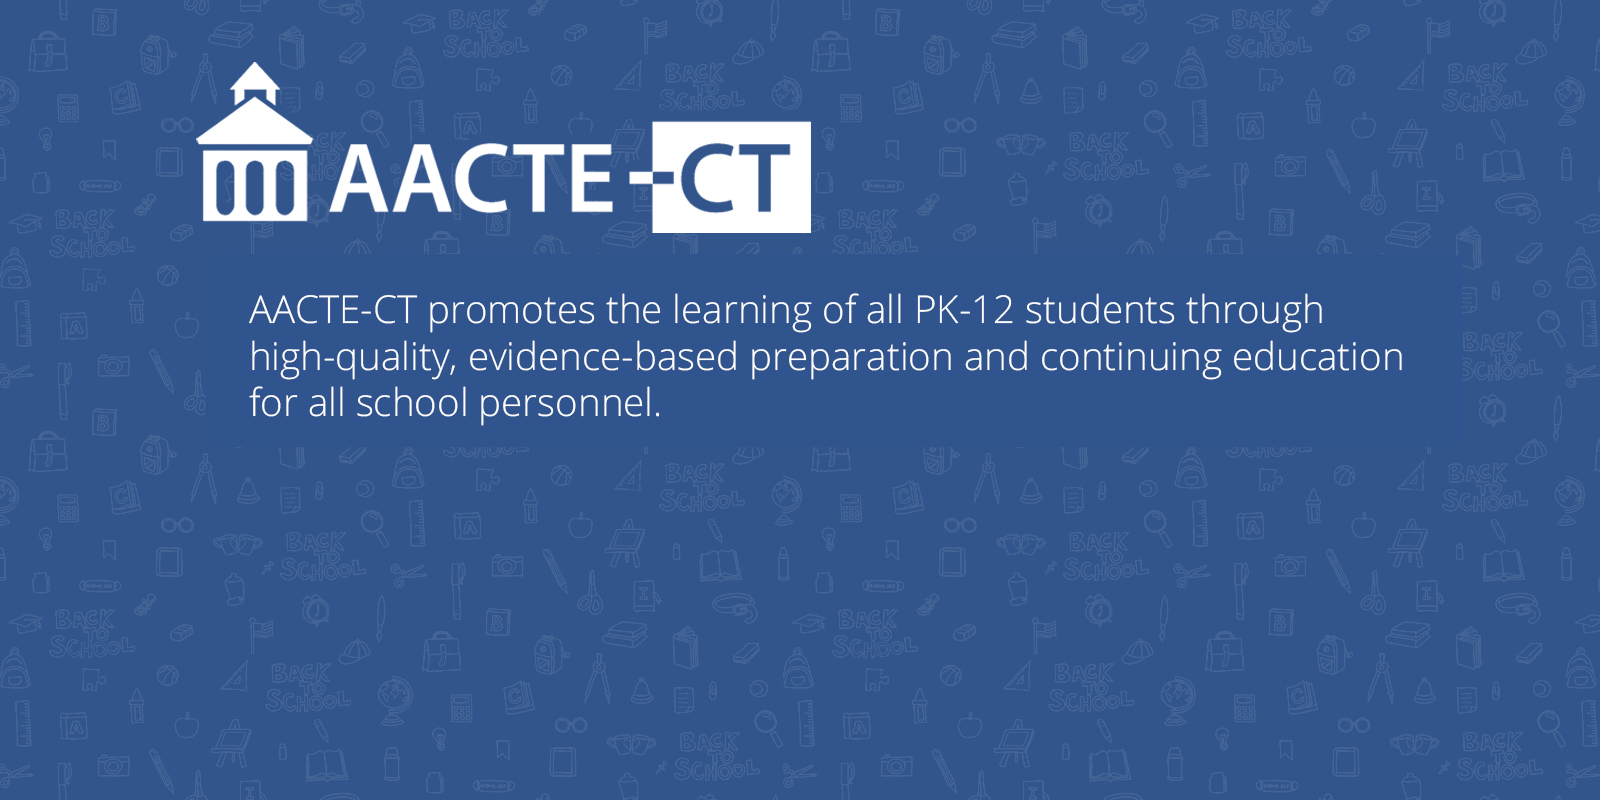 Learn More About AACTE-CT